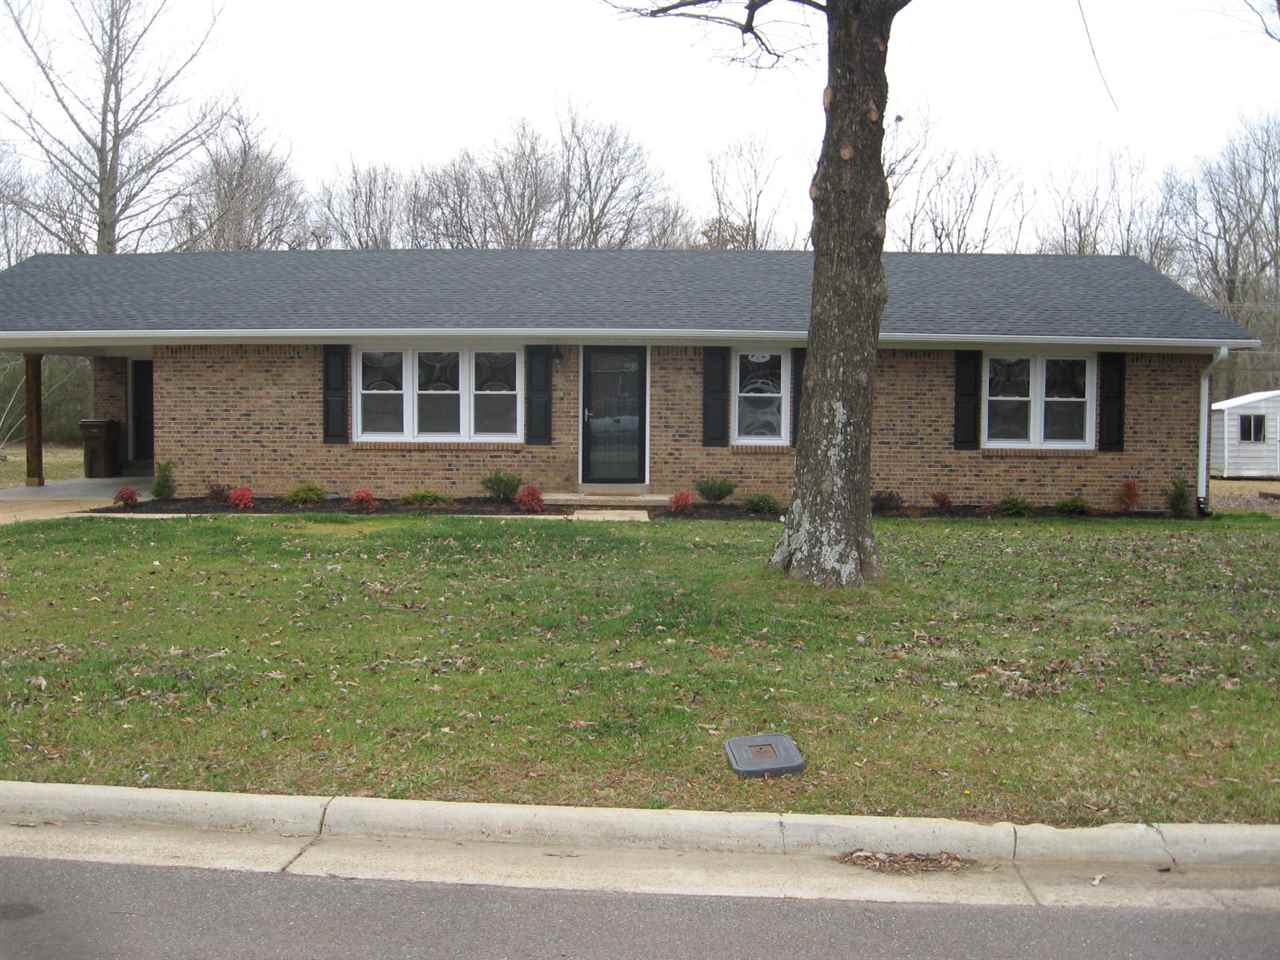 484 Sunset Drive, Lexington, Tennessee 38351, 3 Bedrooms Bedrooms, ,2 BathroomsBathrooms,Residential,For Sale,484 Sunset Drive,205422